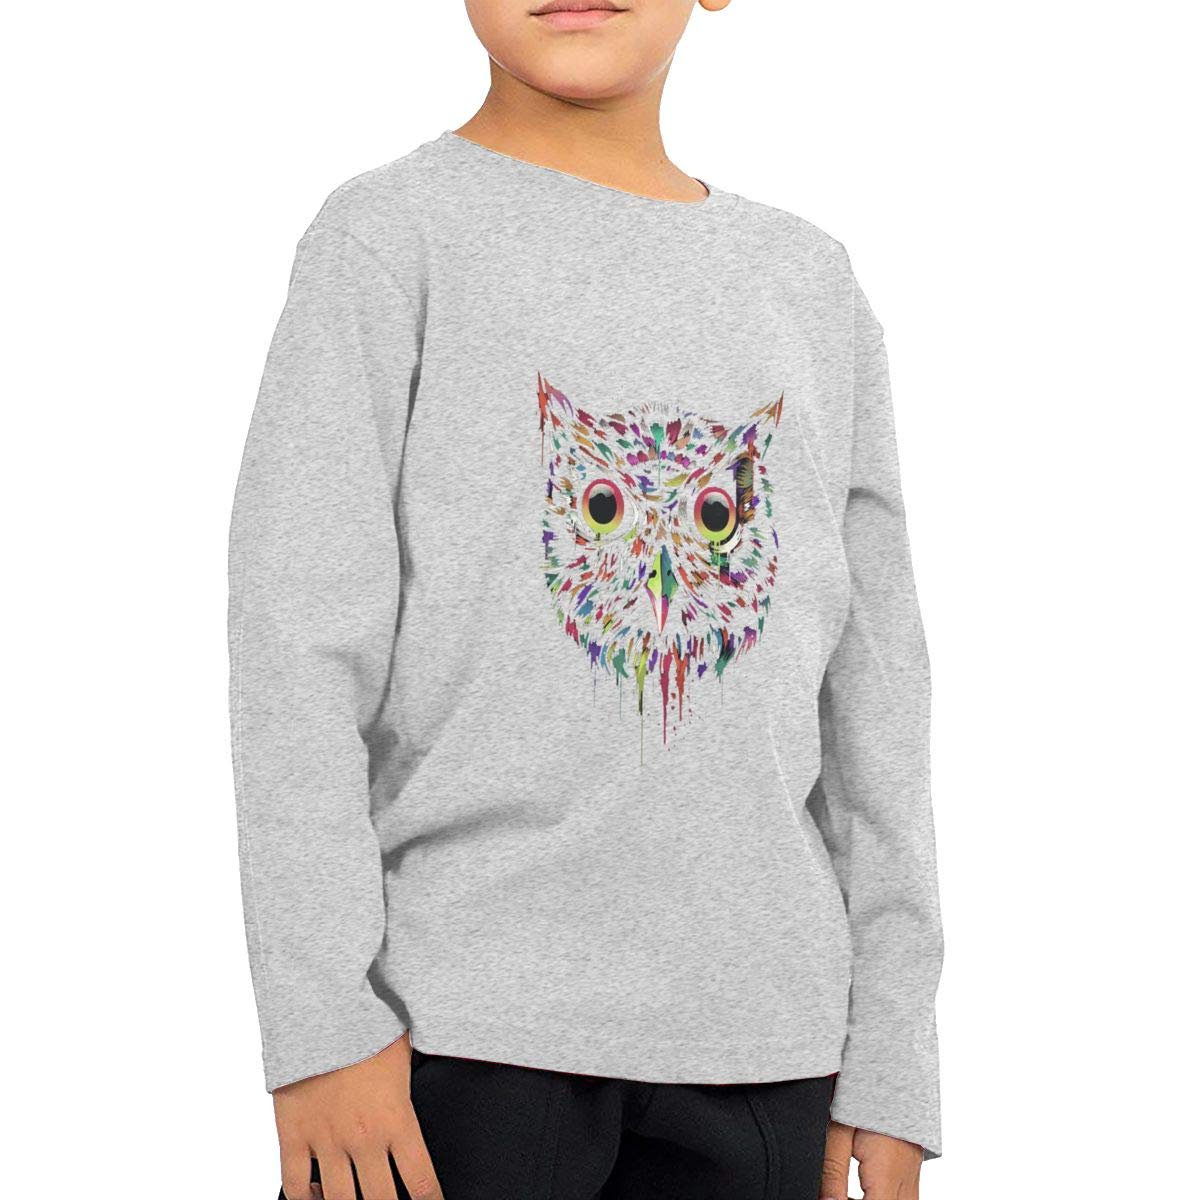 CY SHOP Colored Owl Childrens Boys Cotton Long Sleeve T Shirts